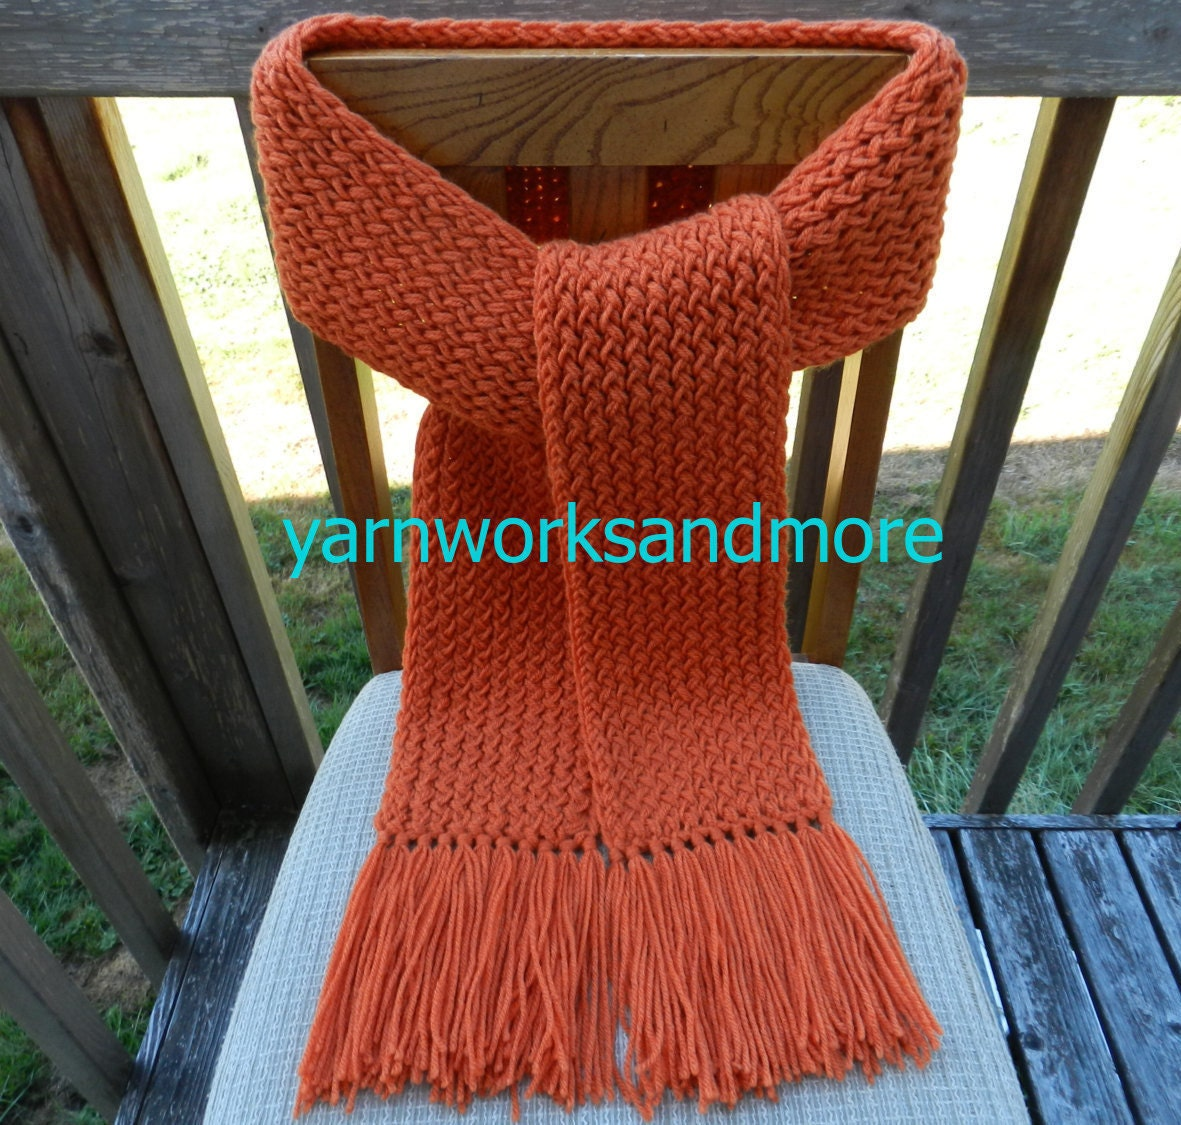 Knitting Loom Scarf Fringe : Orange Knit Scarf Winter Scarf Knit Scarf Loom Knit Scarf